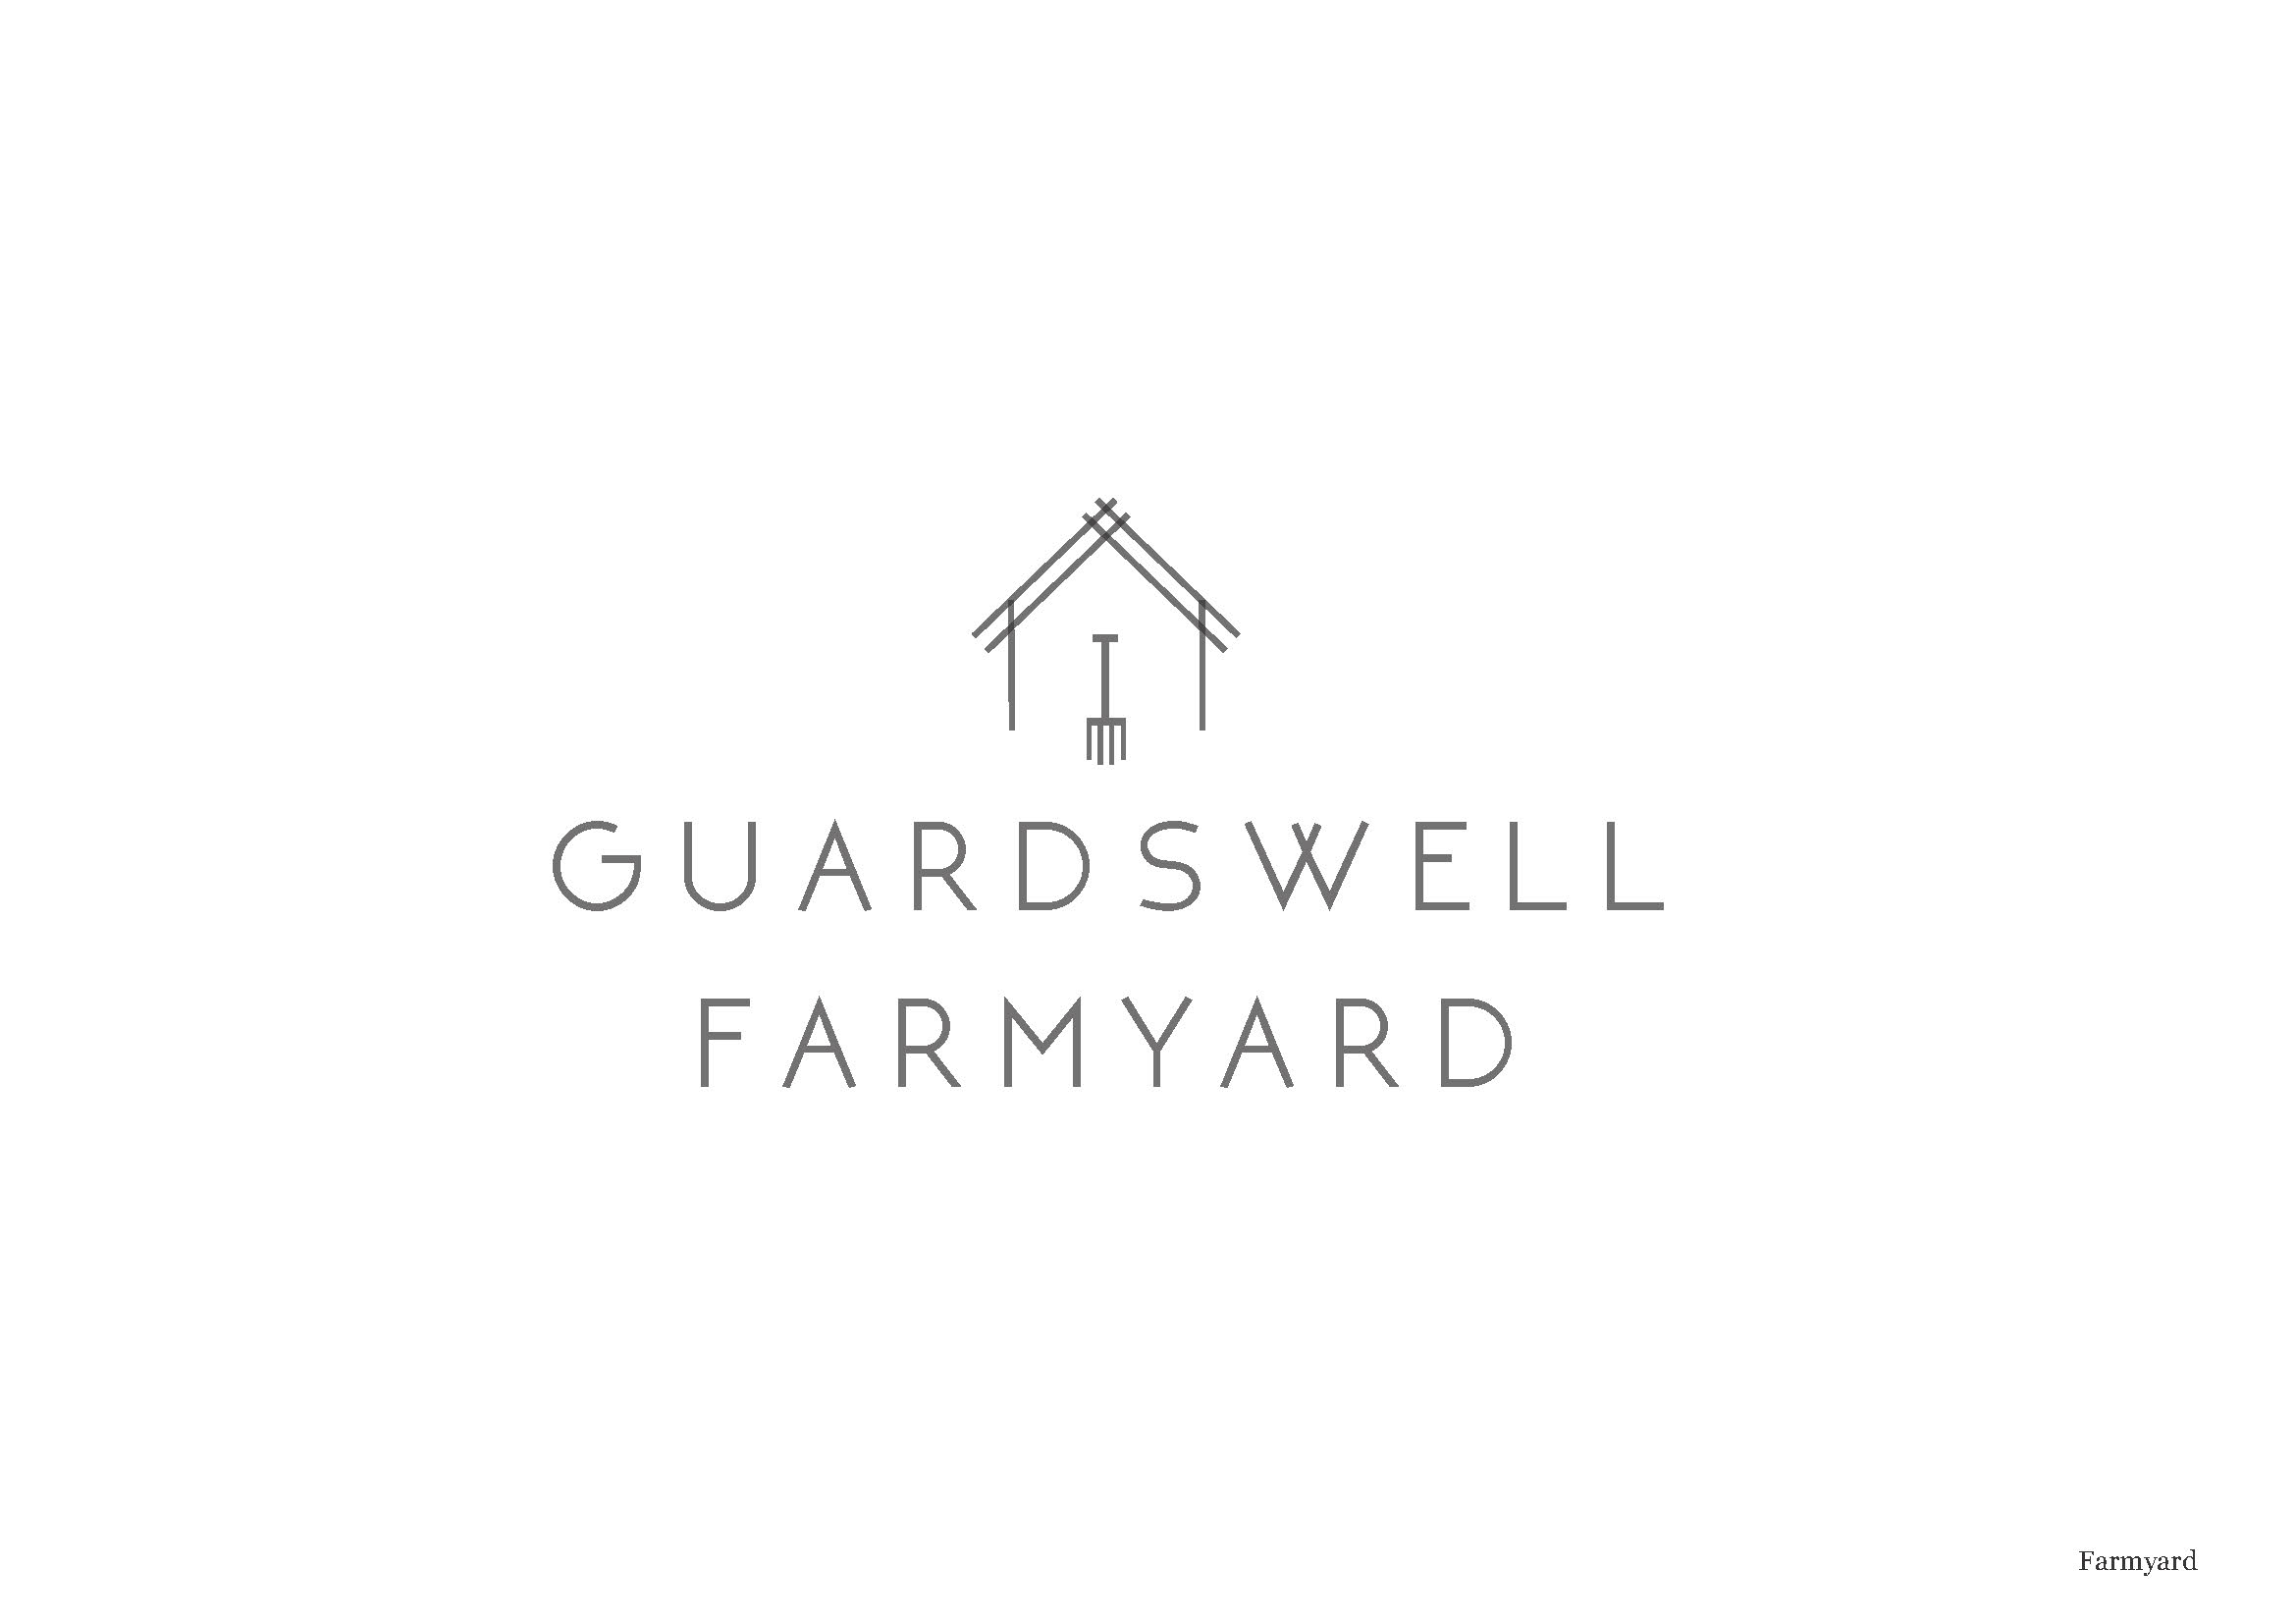 Logo_Design_3_Guardswell_Page_4.jpg